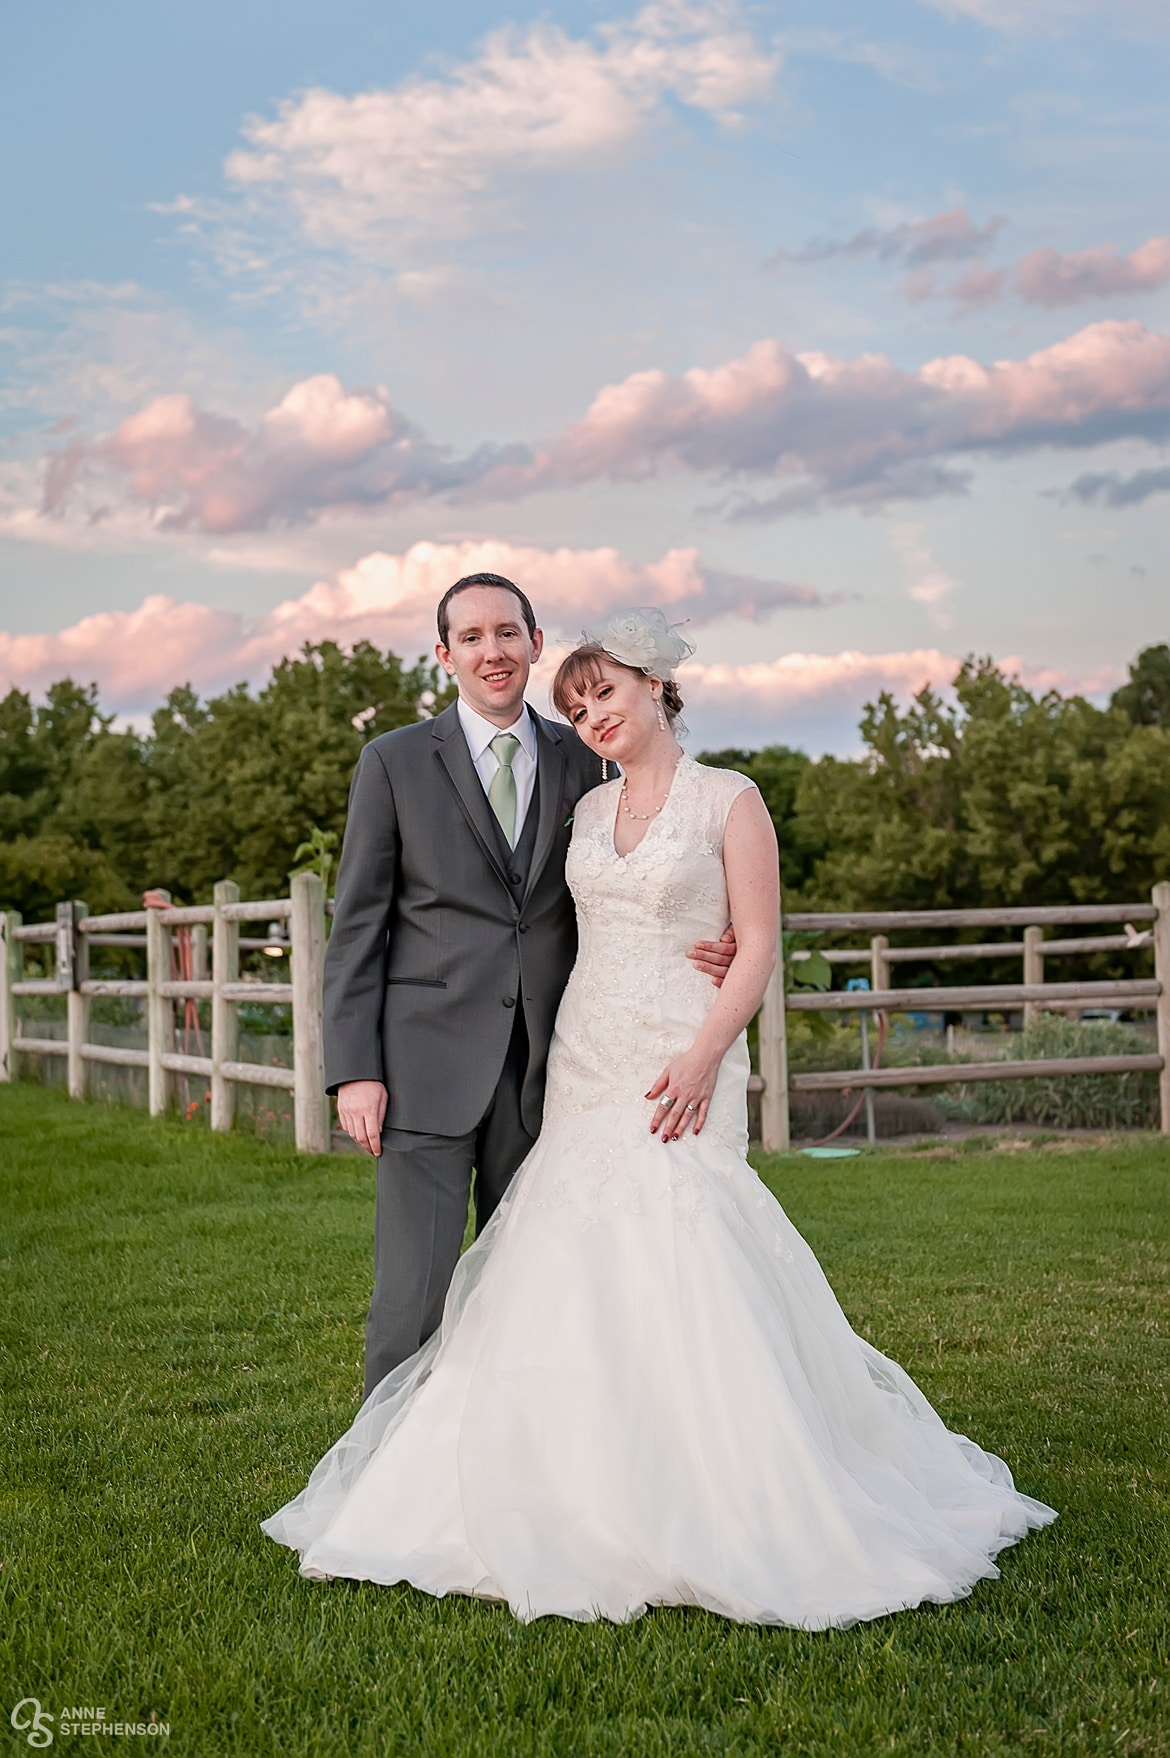 The bride and groom in front of a garden. The bride wore a 1920s inspired dress and veil.